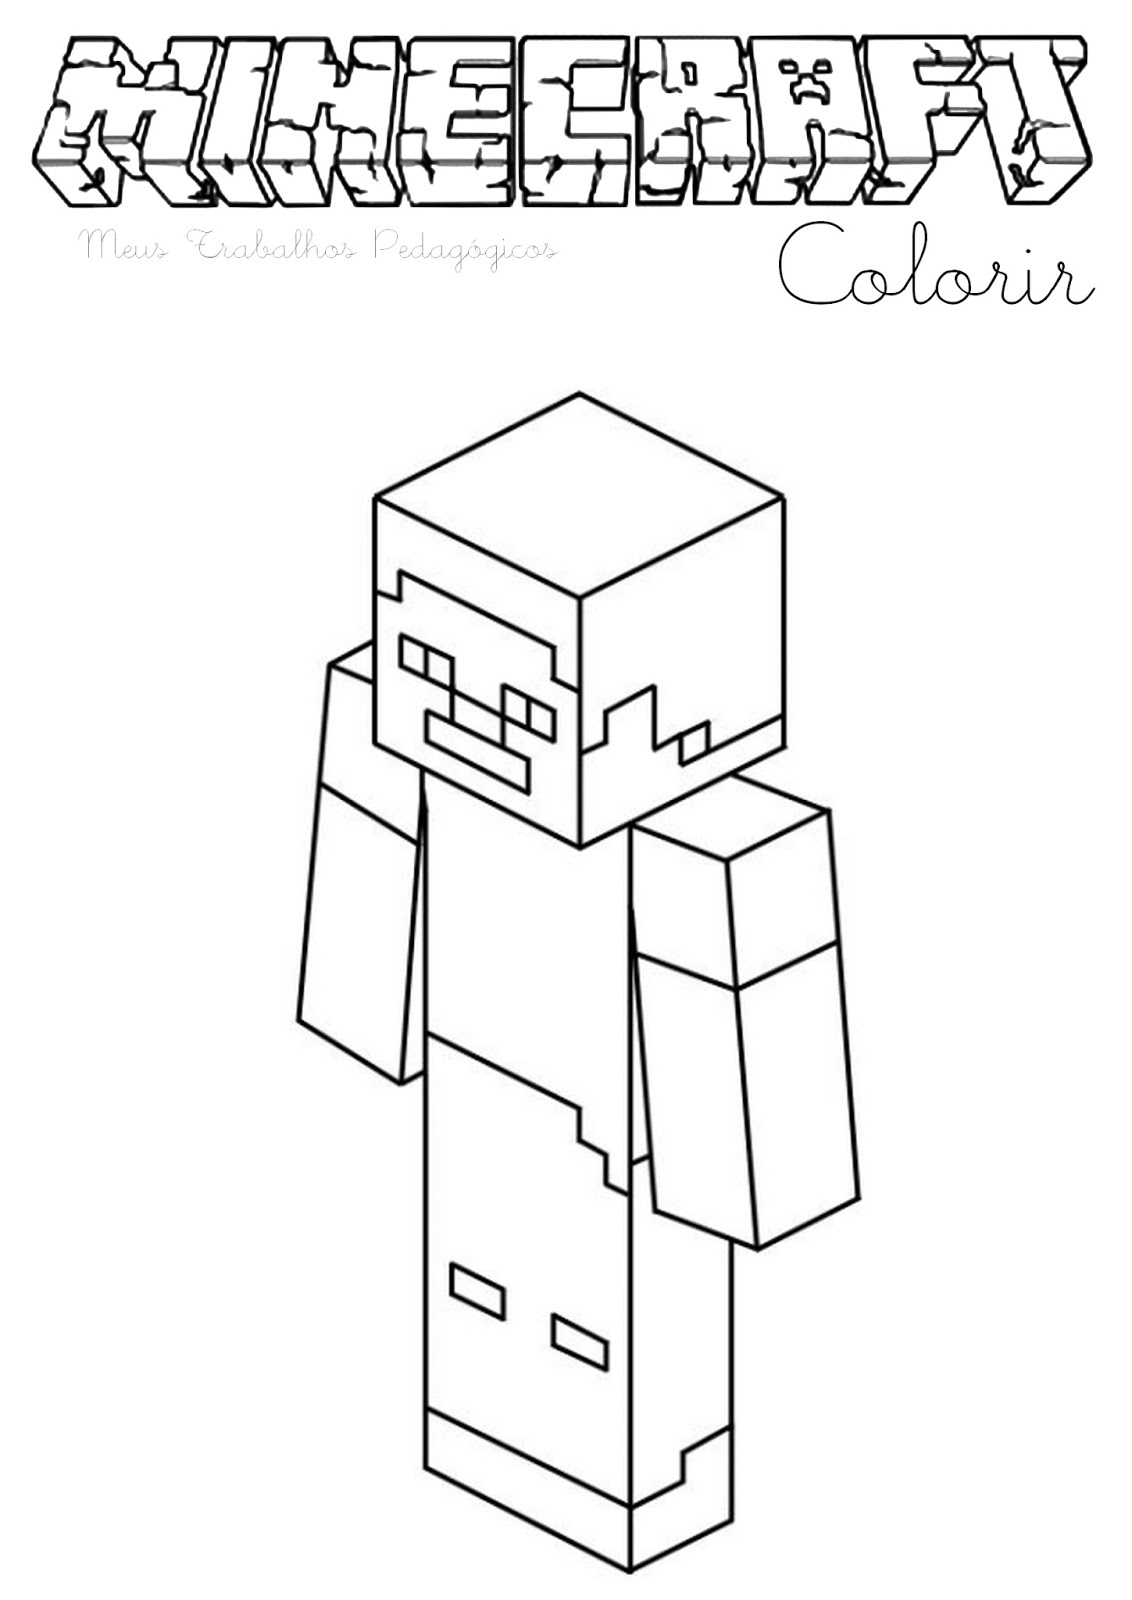 Dan tdm coloring pages ~ Minecraft Dantdm Coloring Pages Coloring Pages